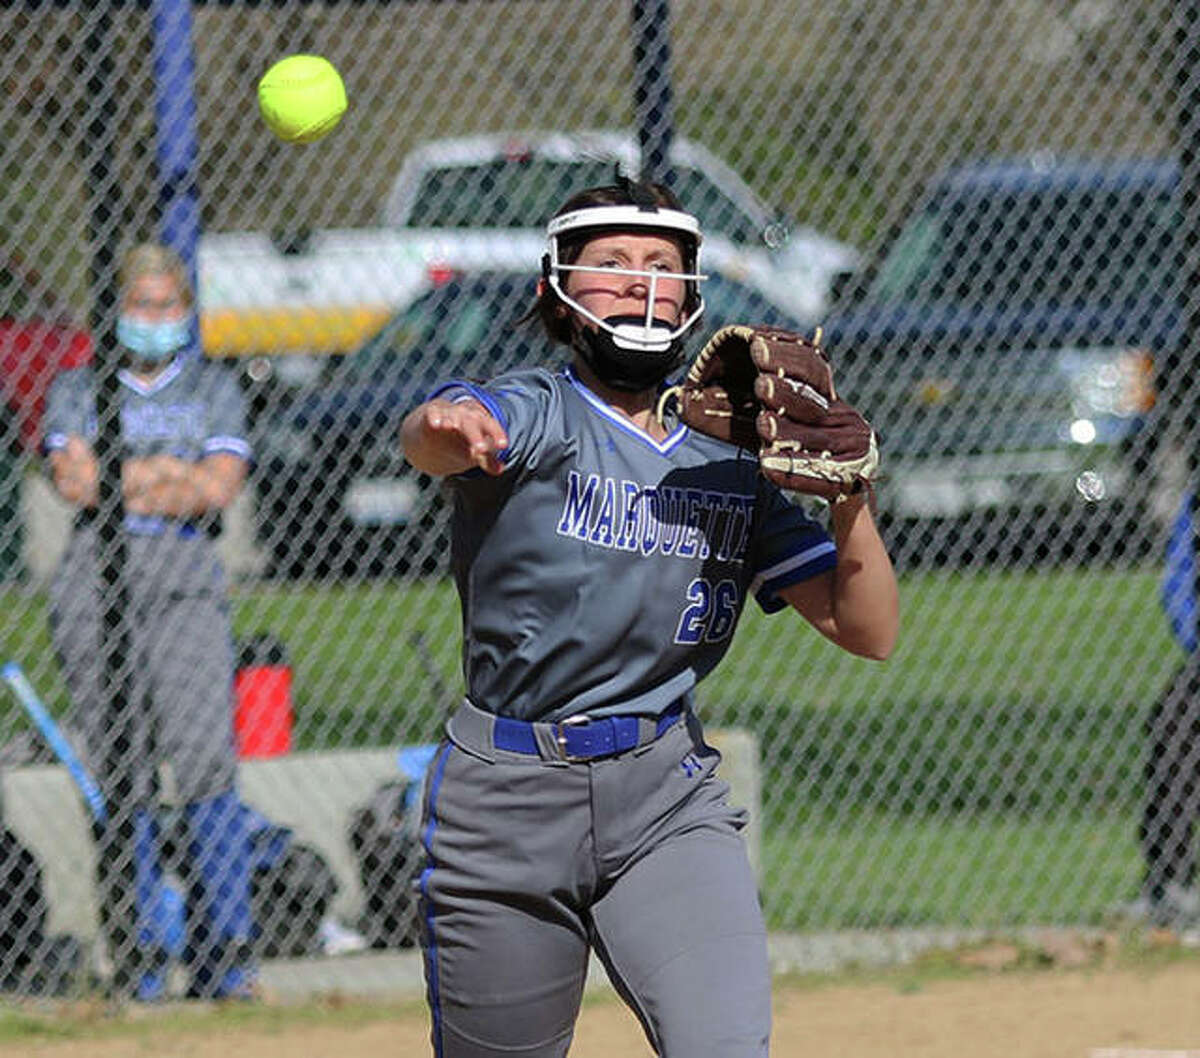 Marquette Catholic pitcher Lauren Lenihan, shown throwing out baserunner in a game earlier this season in Alton, struck out 13 Wednesday in a complete-game win at Gillespie that ended the Miners' seven-game winning streak.